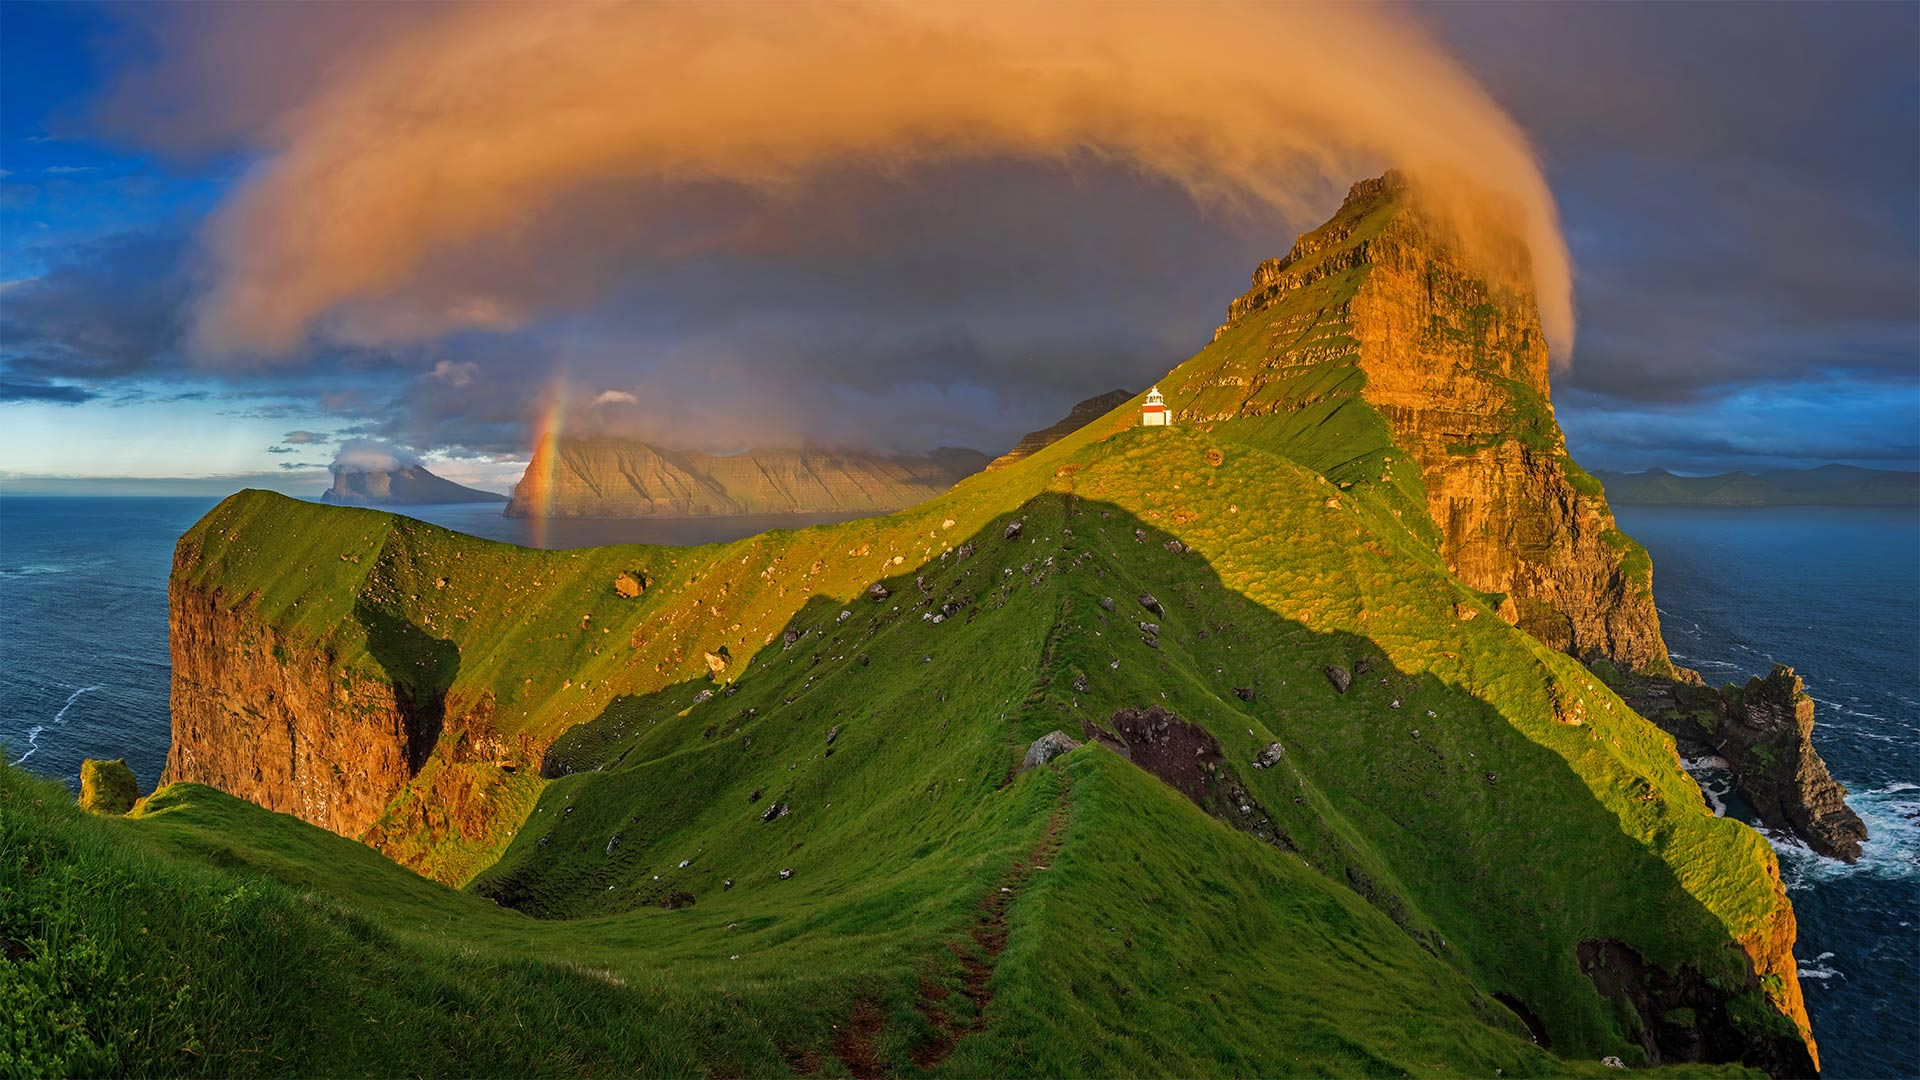 Kalsoy Island, one of the Faroe Islands (© Swen Stroop/Getty Images Plus)(Bing United States)